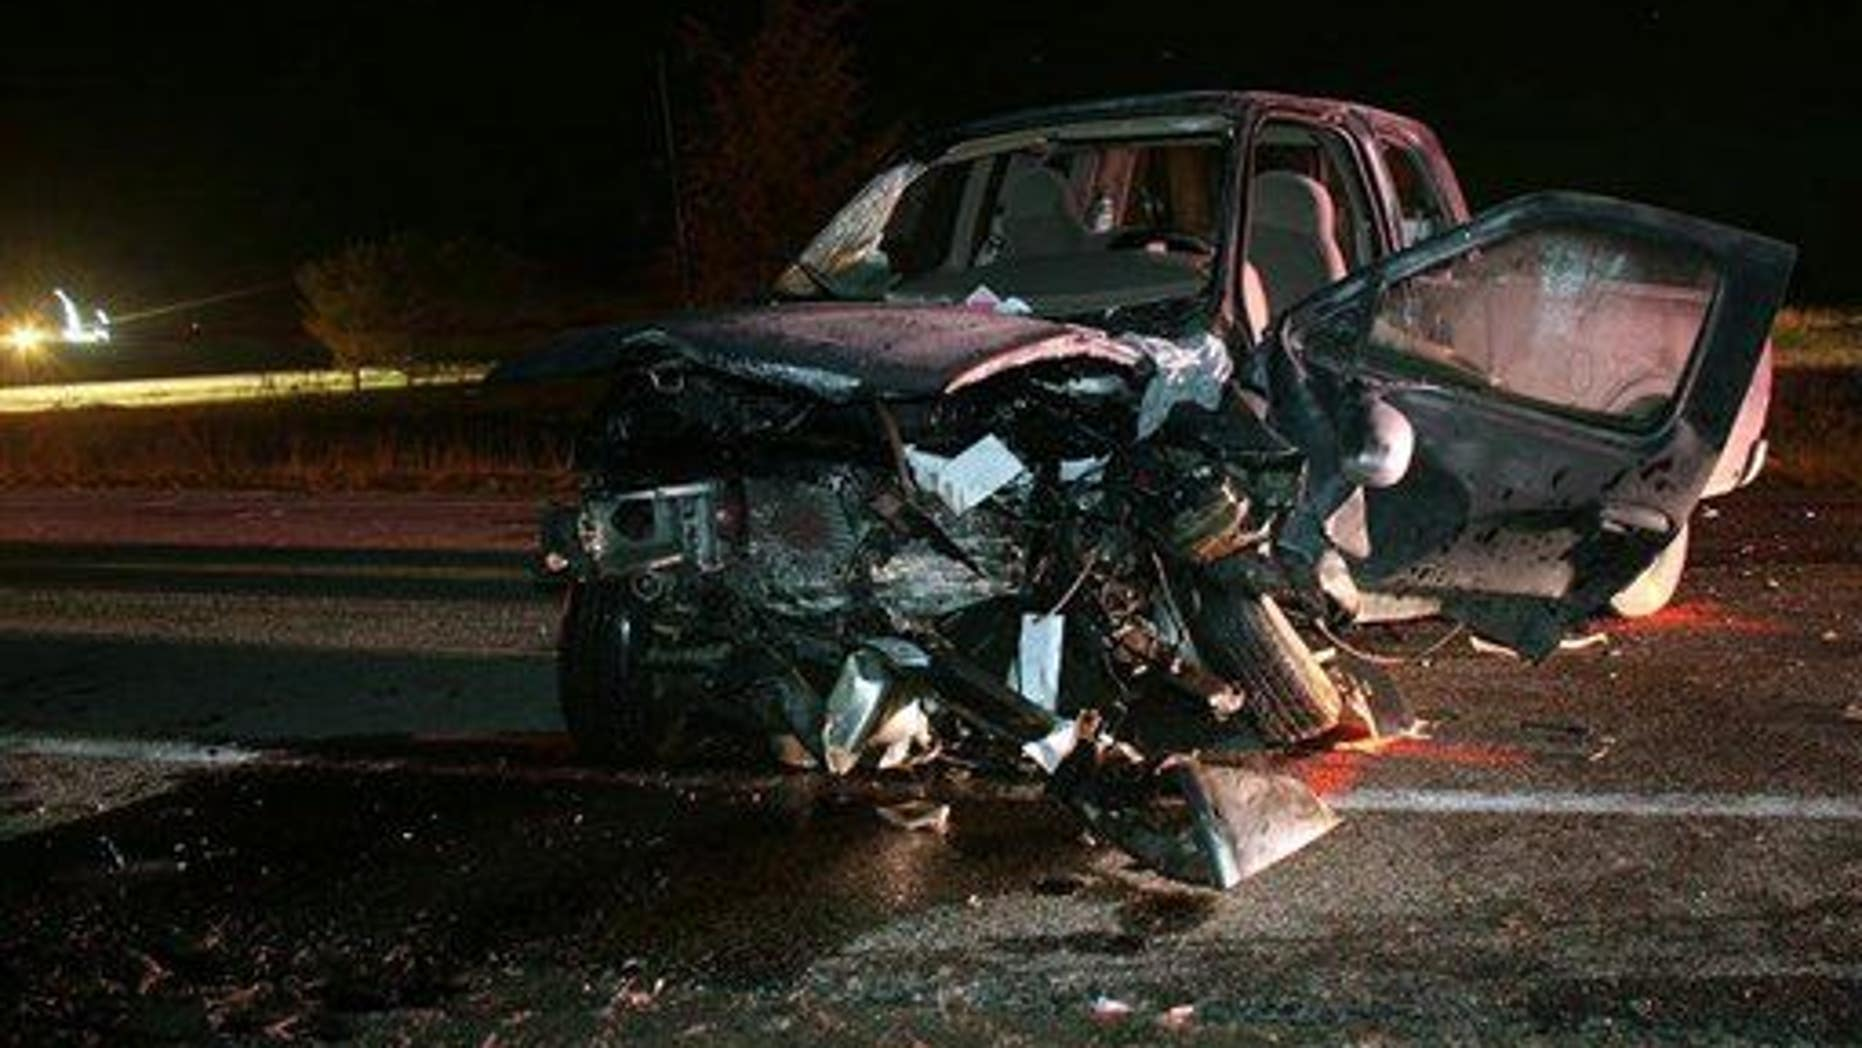 The scene of a drunk driving crash.